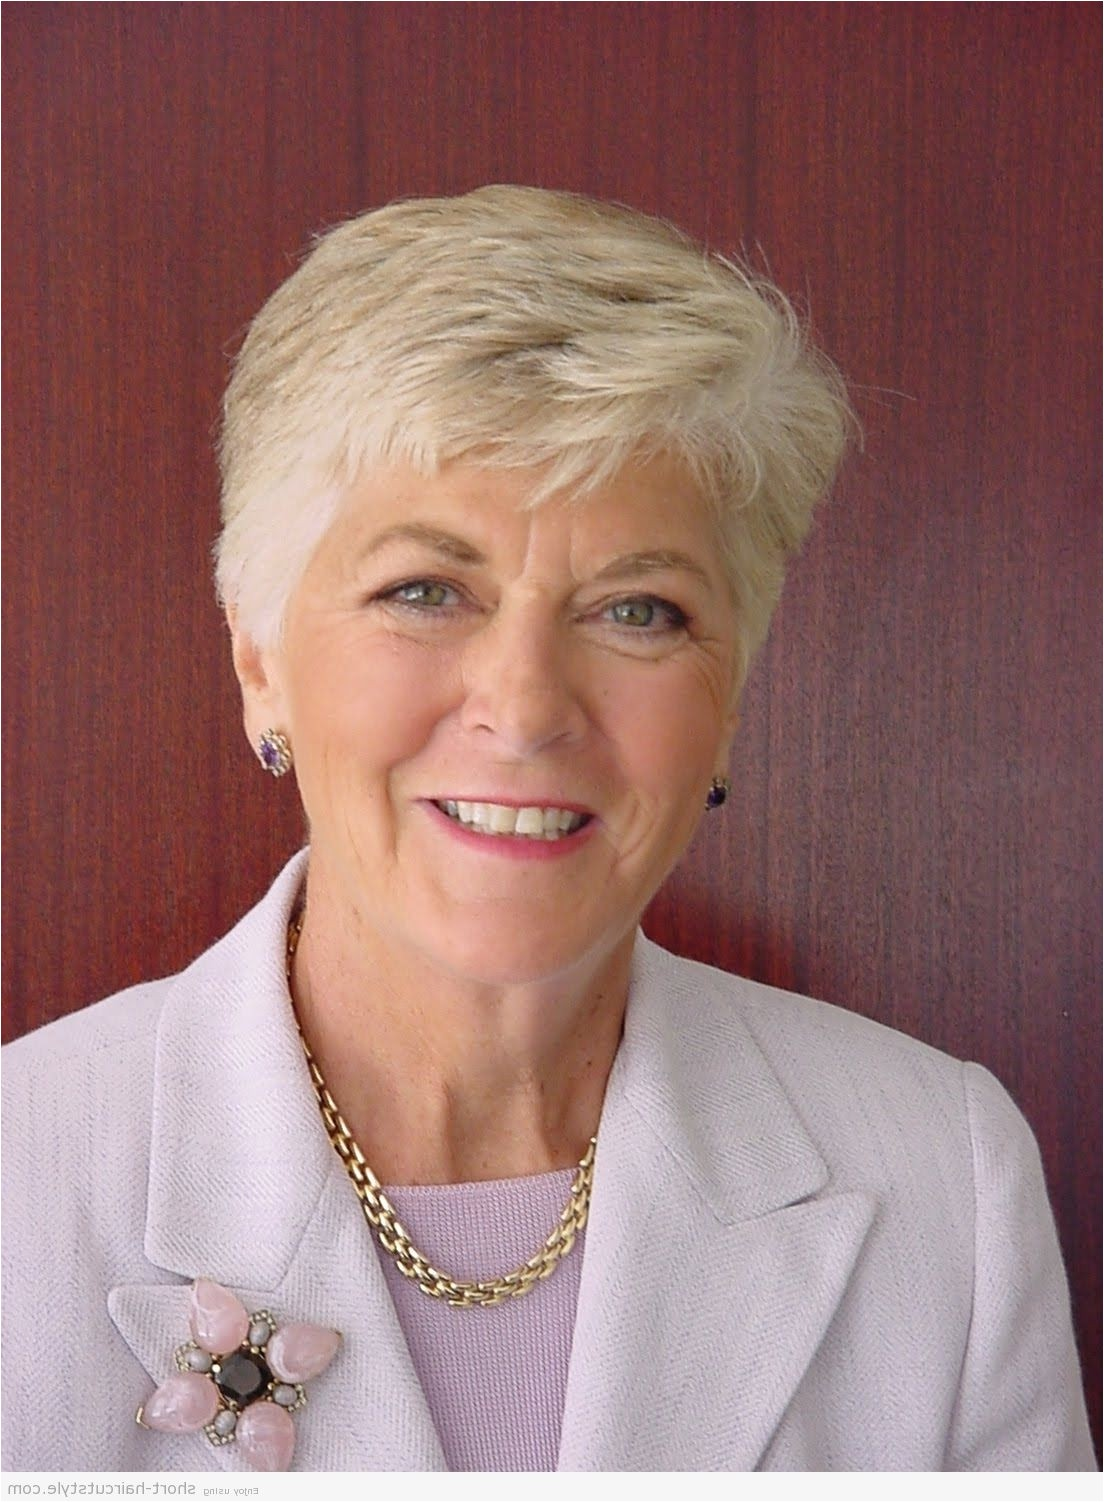 short hairstyles for women over 60 with thick hair